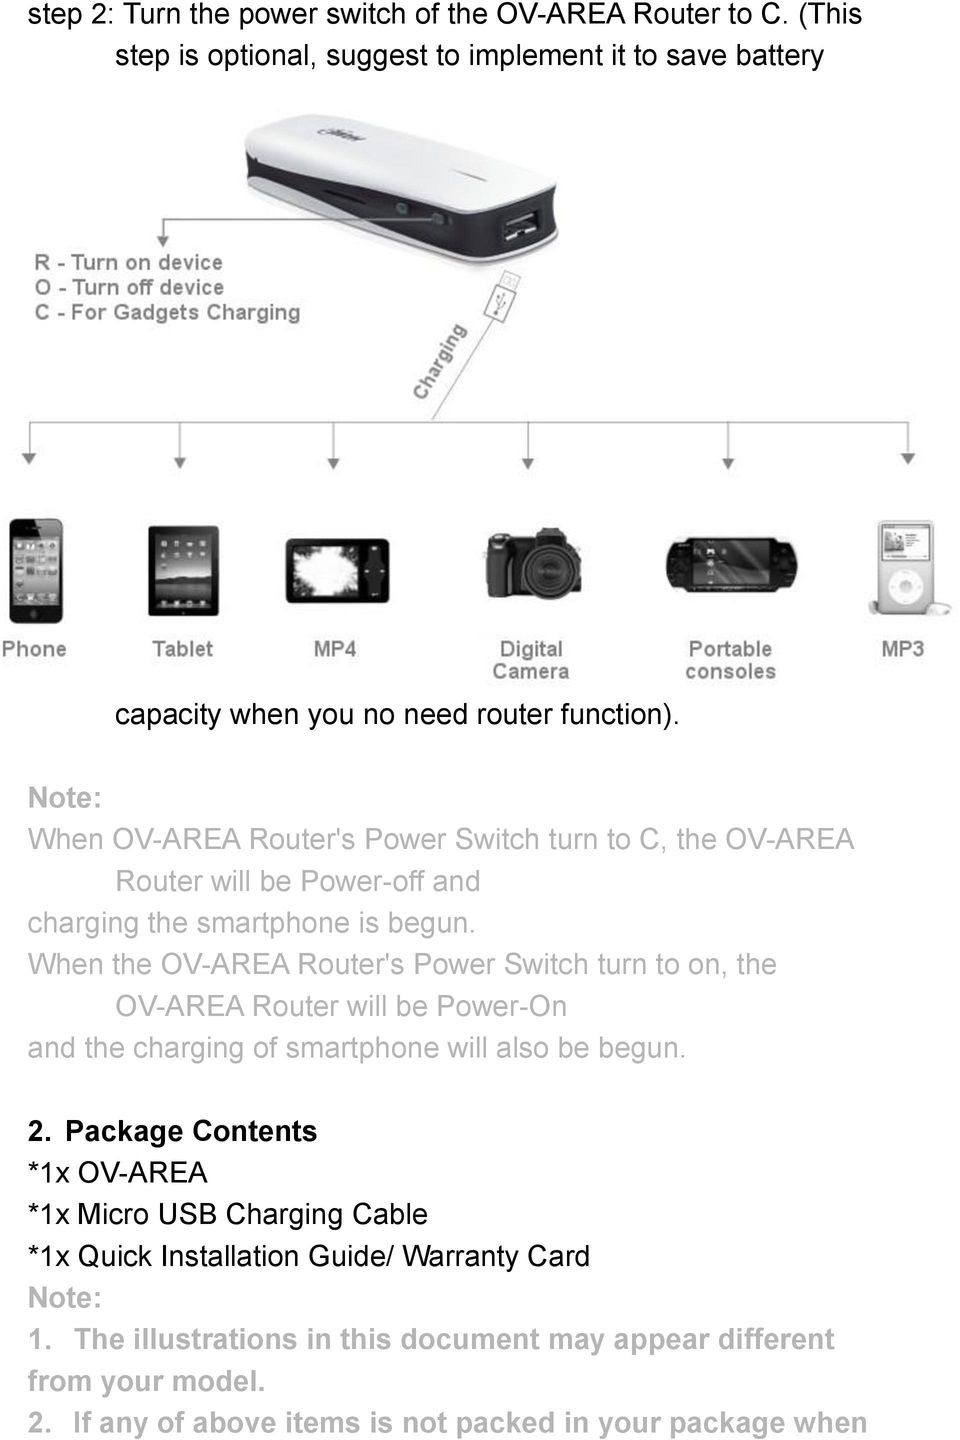 When the OV-AREA Router's Power Switch turn to on, the OV-AREA Router will be Power-On and the charging of smartphone will also be begun. 2.